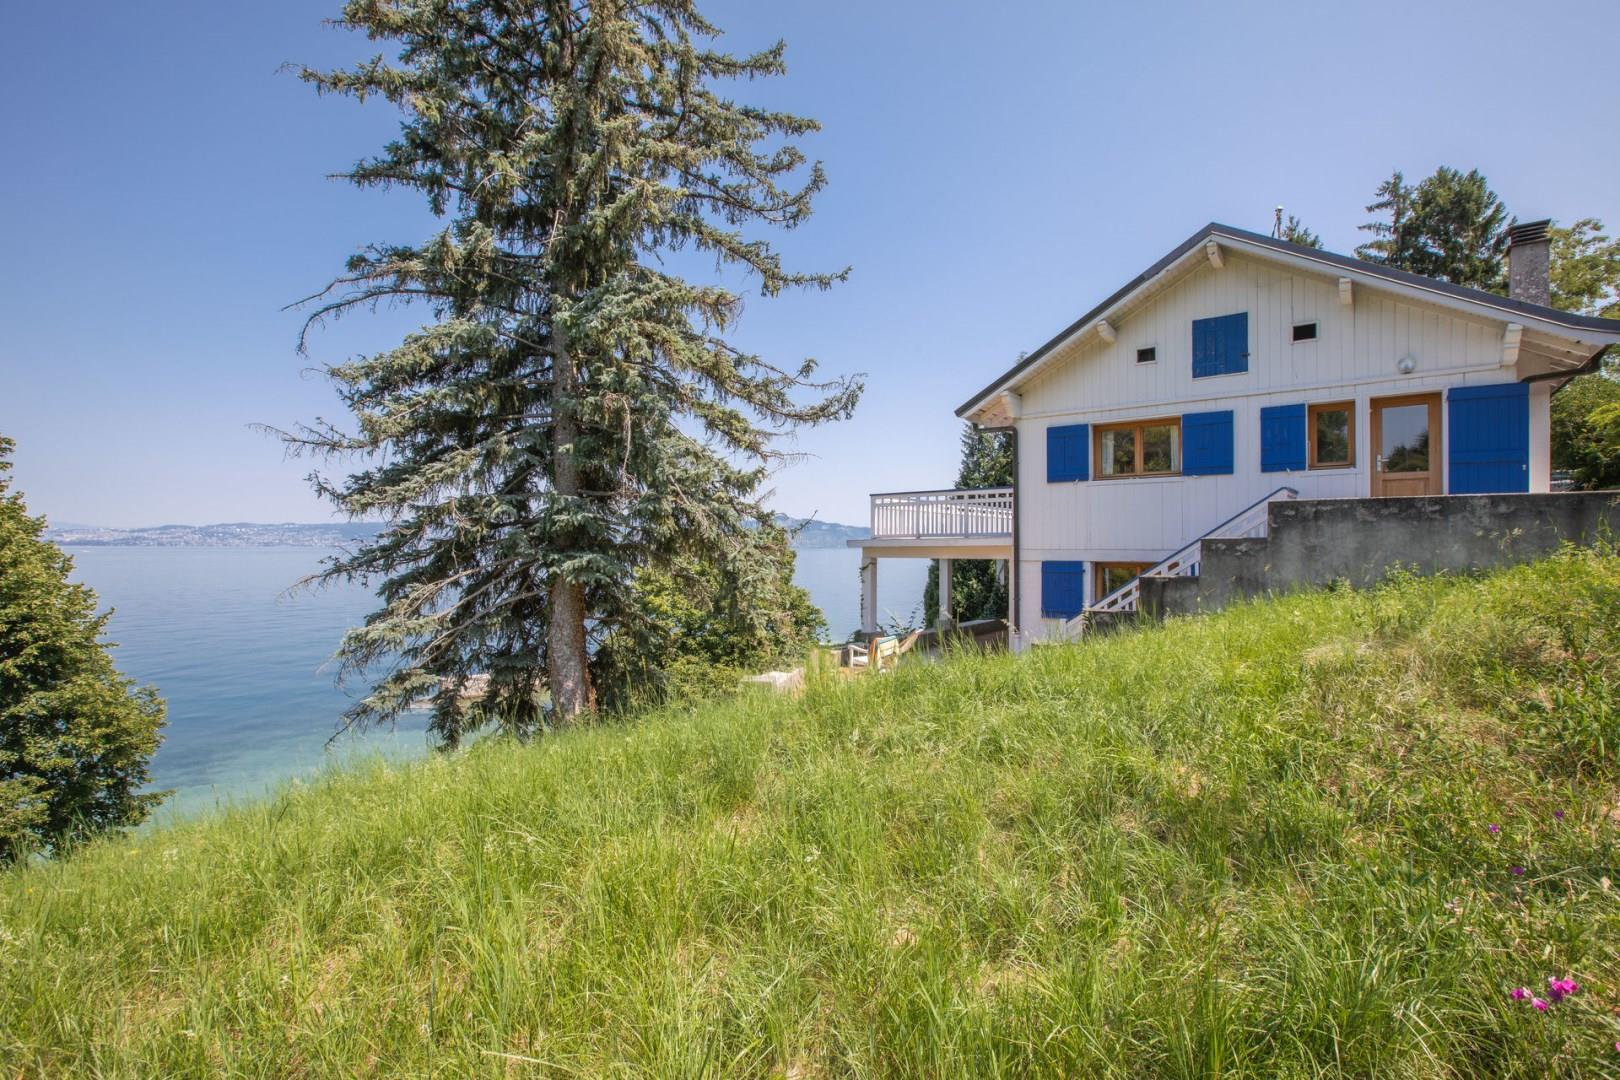 Villa by the lake in the suburb of Evian-les-Bains